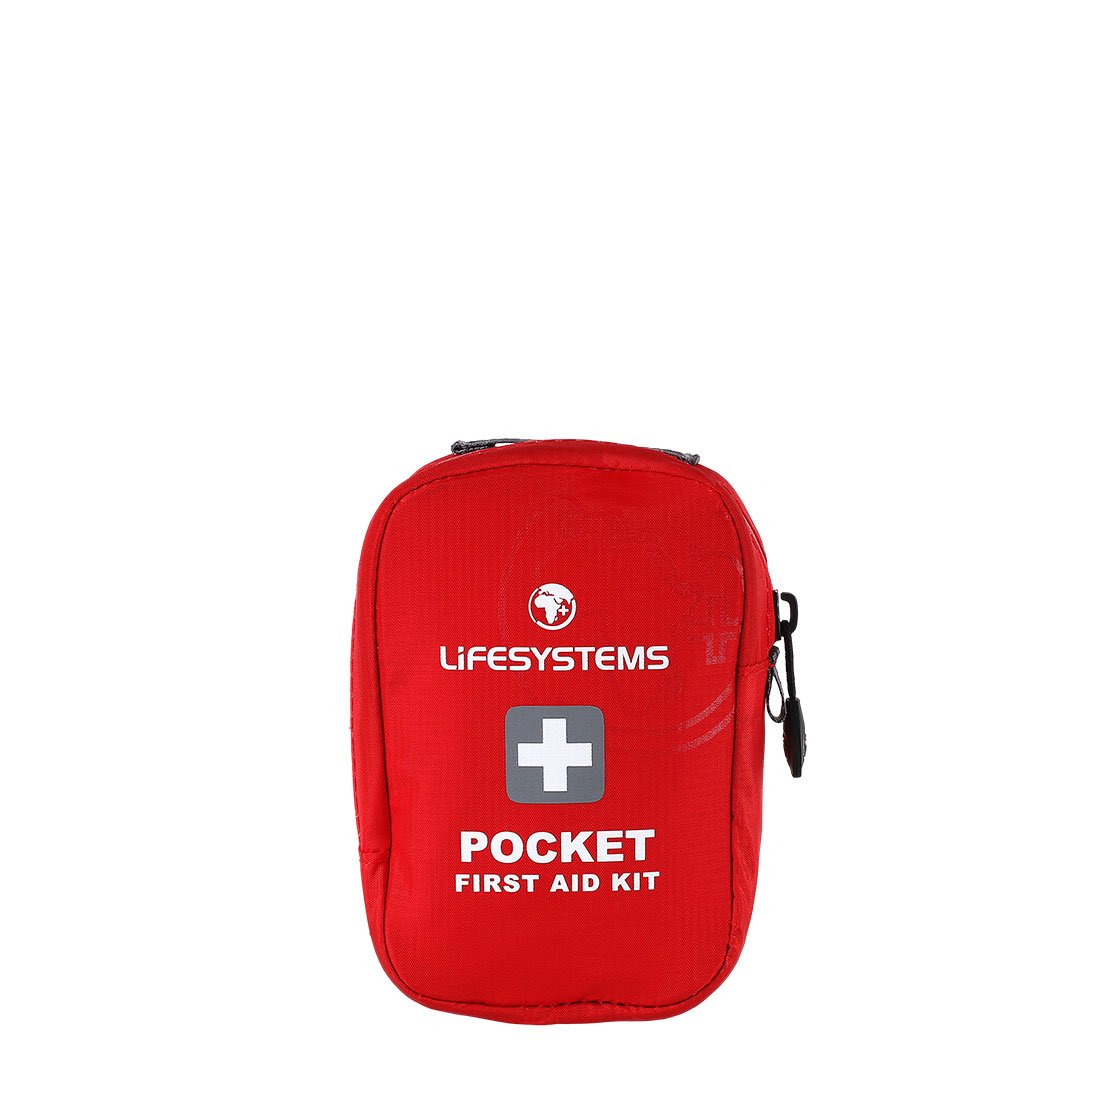 Lifesystems Explorateur Outdoor Complet First Aid Kit 36 objets